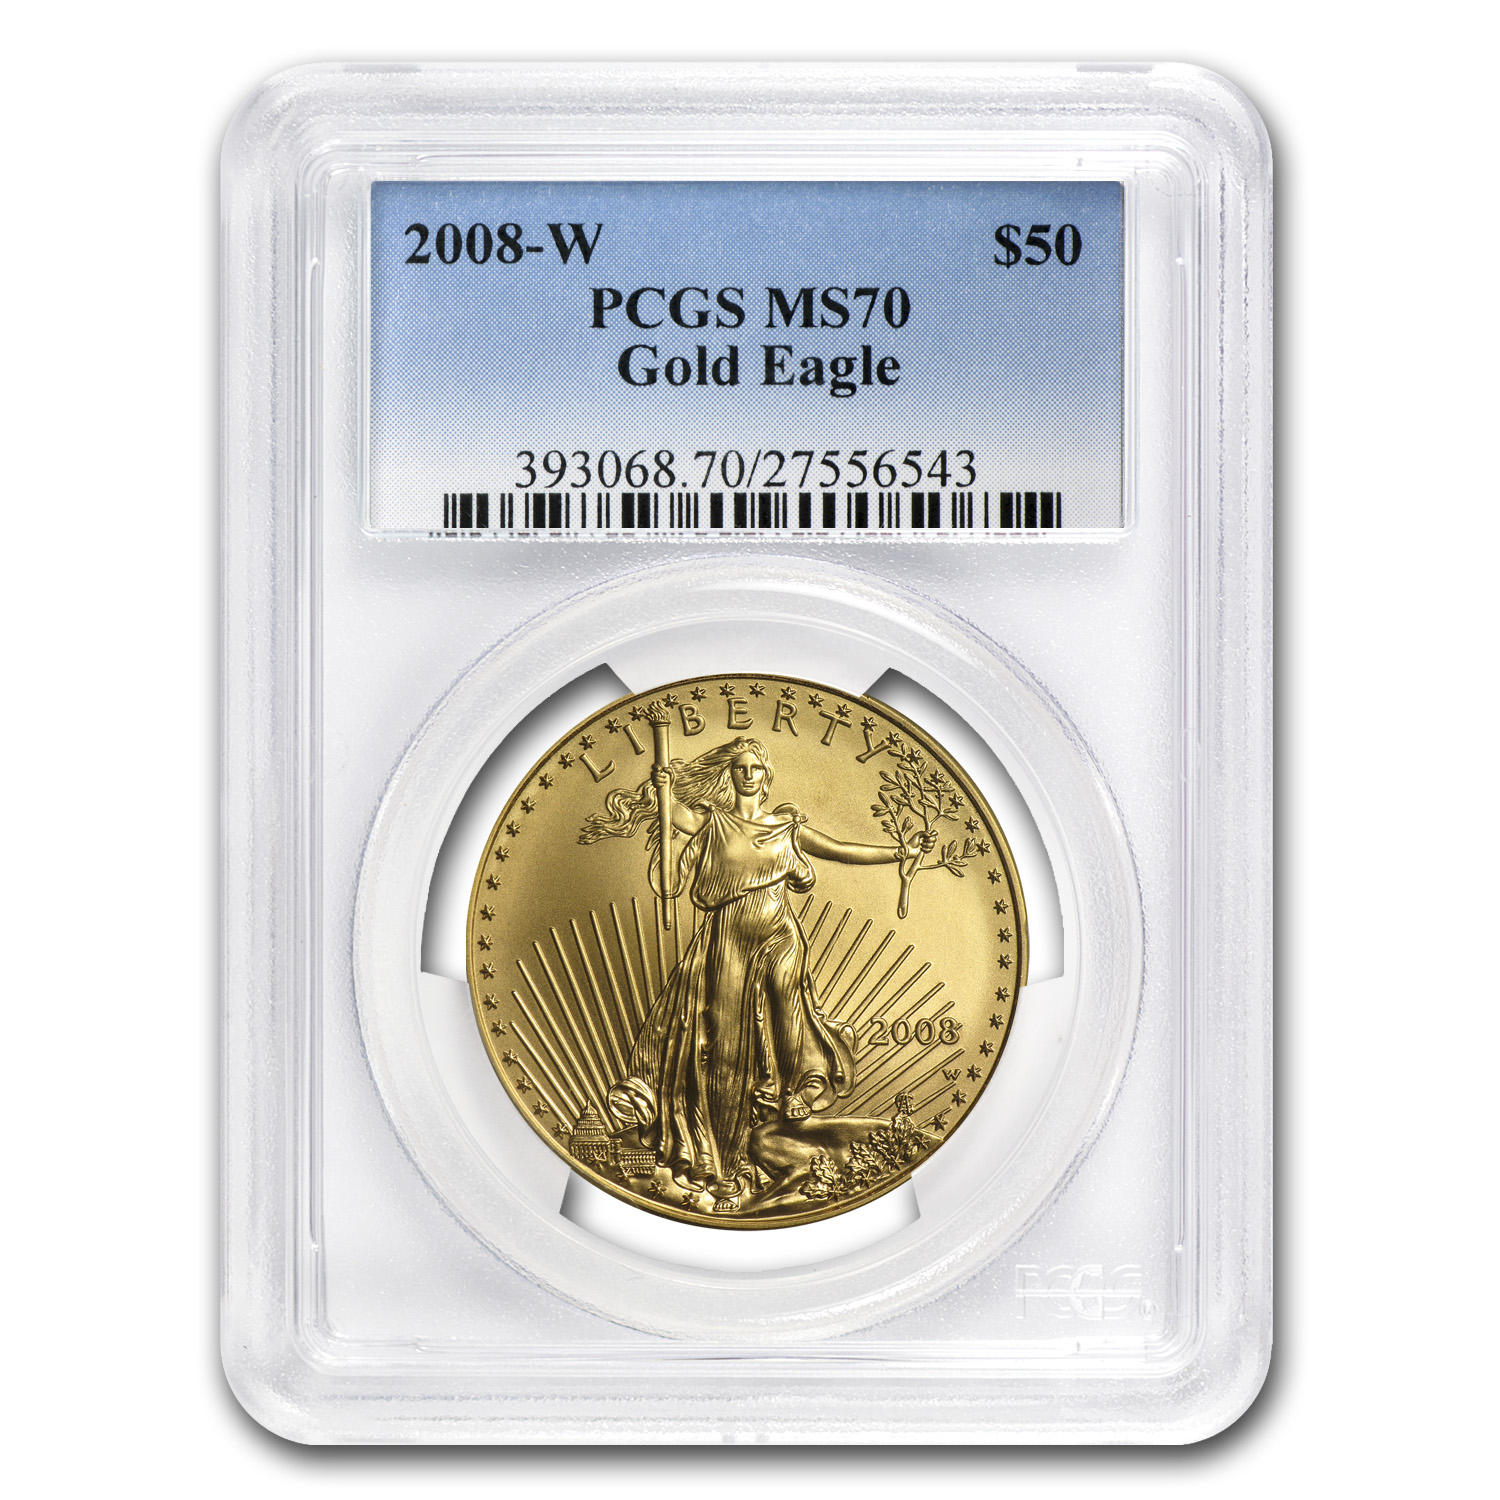 2008-W 1 oz Burnished Gold Eagle MS-70 PCGS